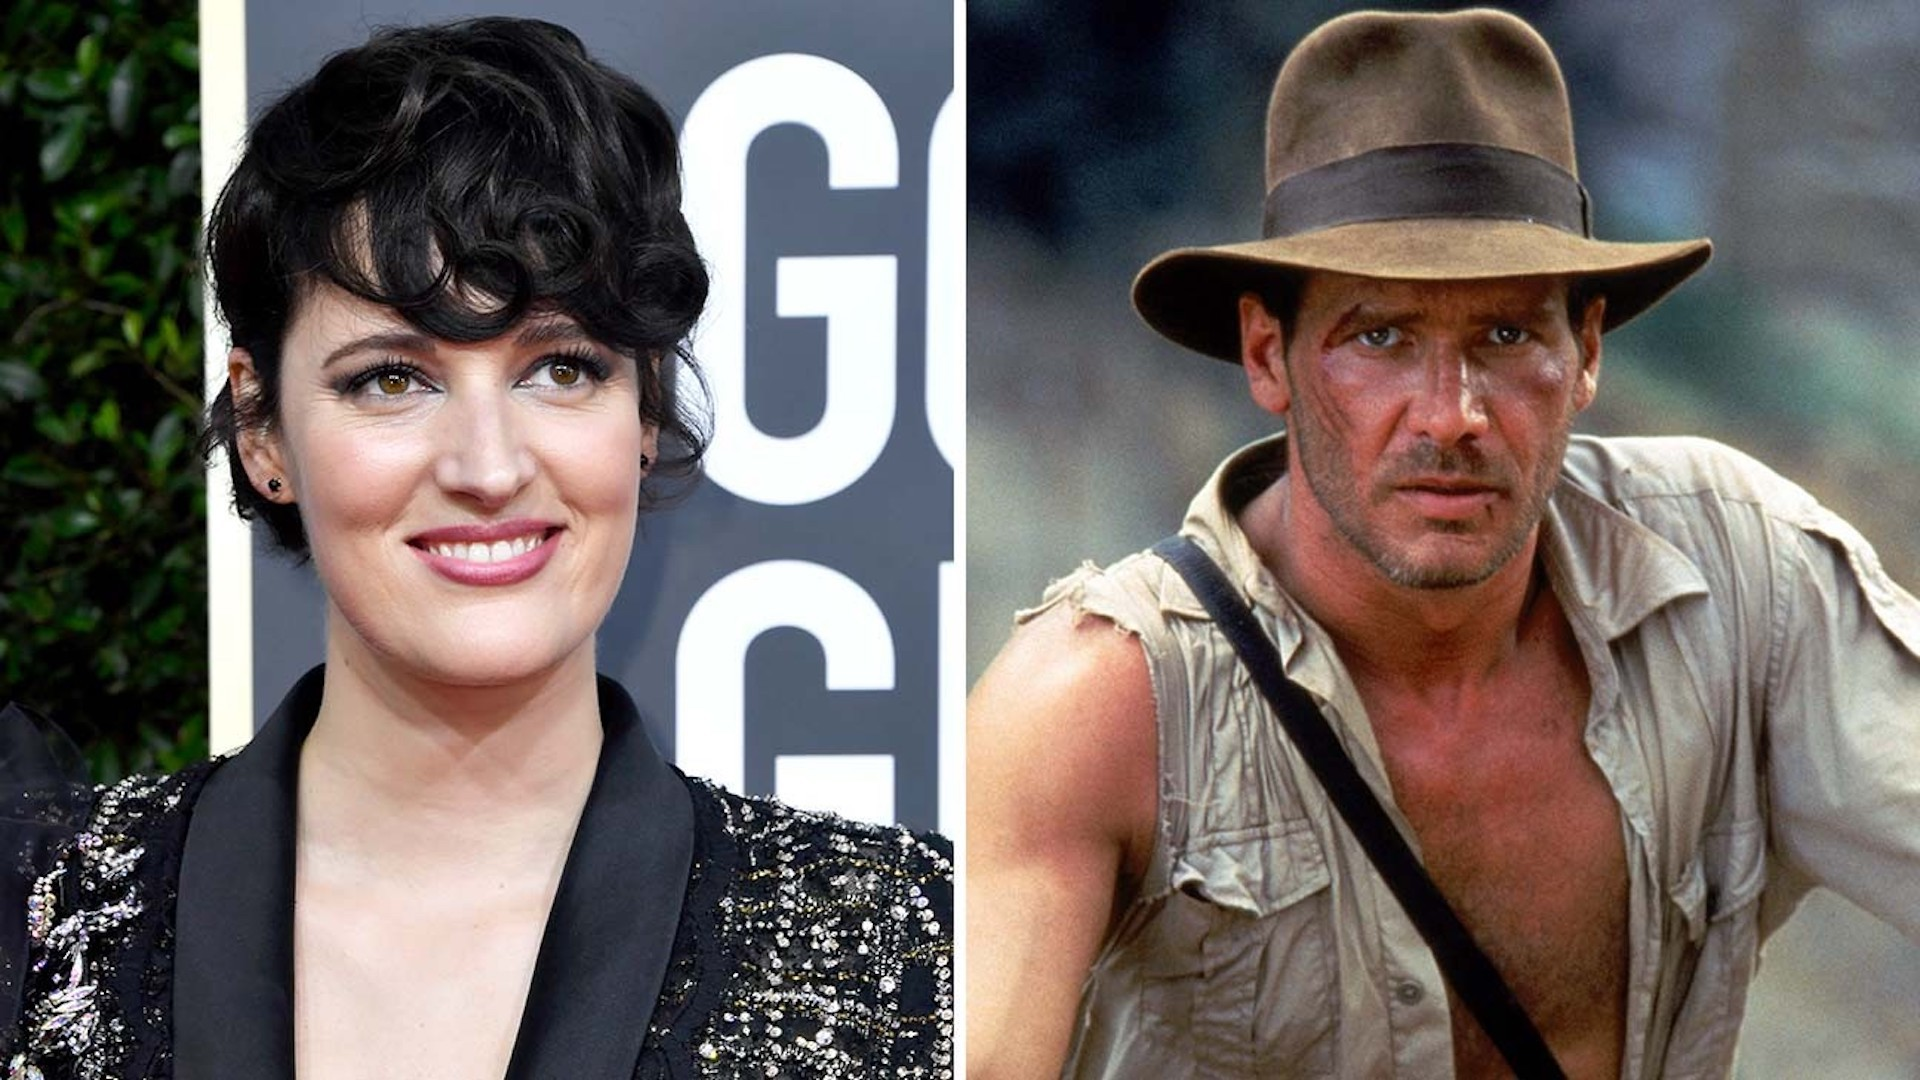 Phoebe Waller-Bridge to Star Alongside Harrison Ford in 'Indiana Jones 5' | THR News